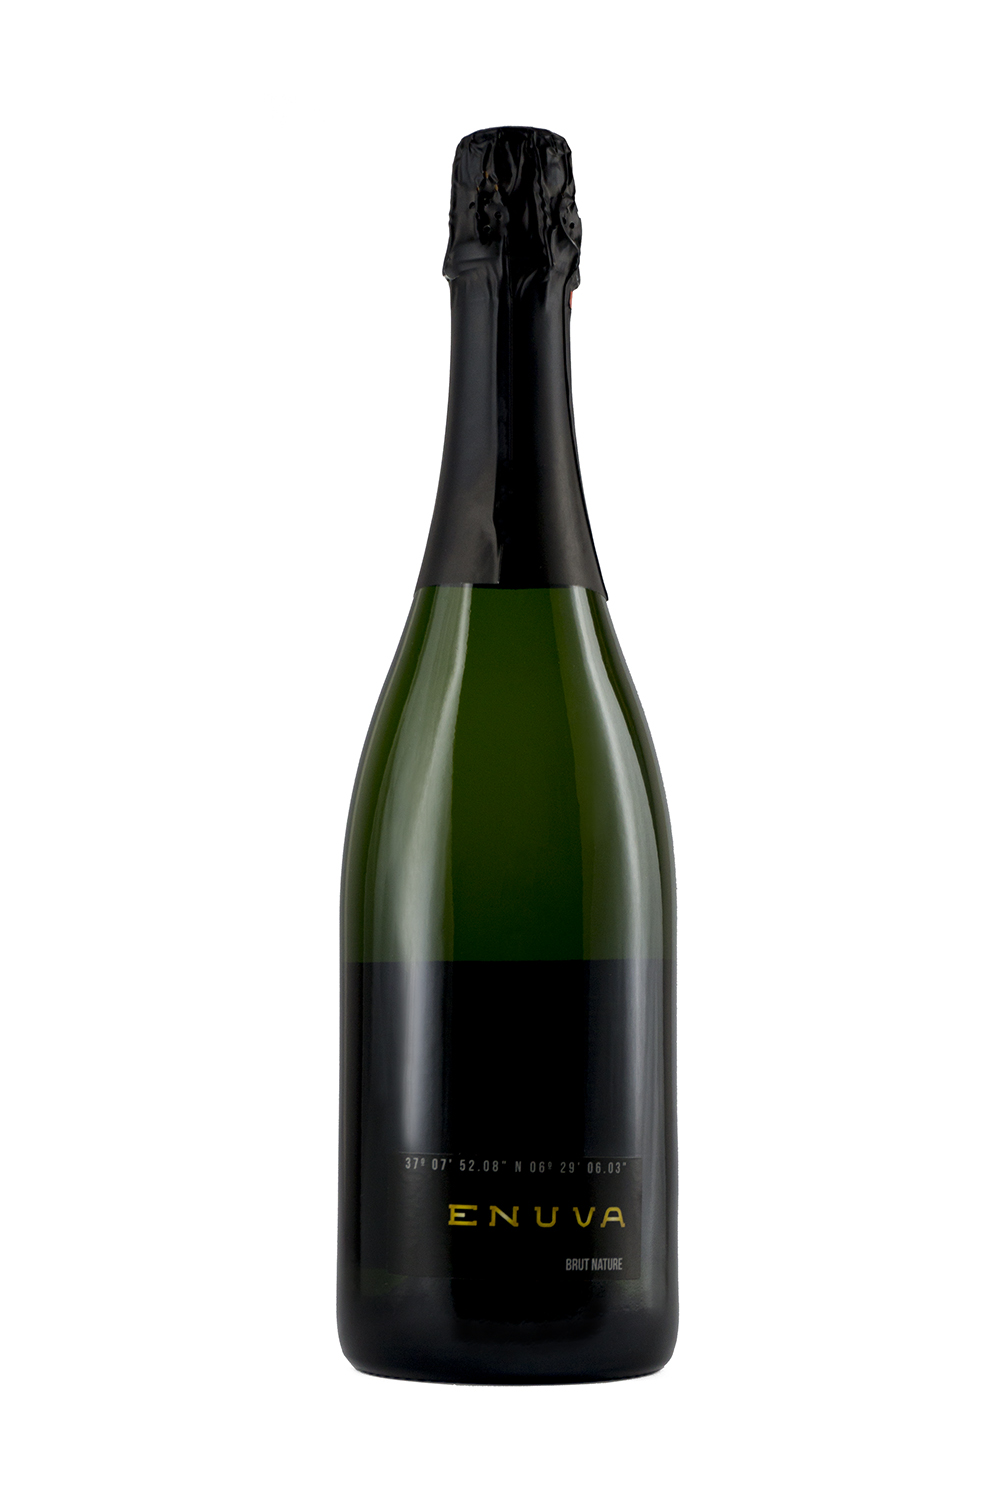 Enuva, Sparkling brut nature. 750 ml.